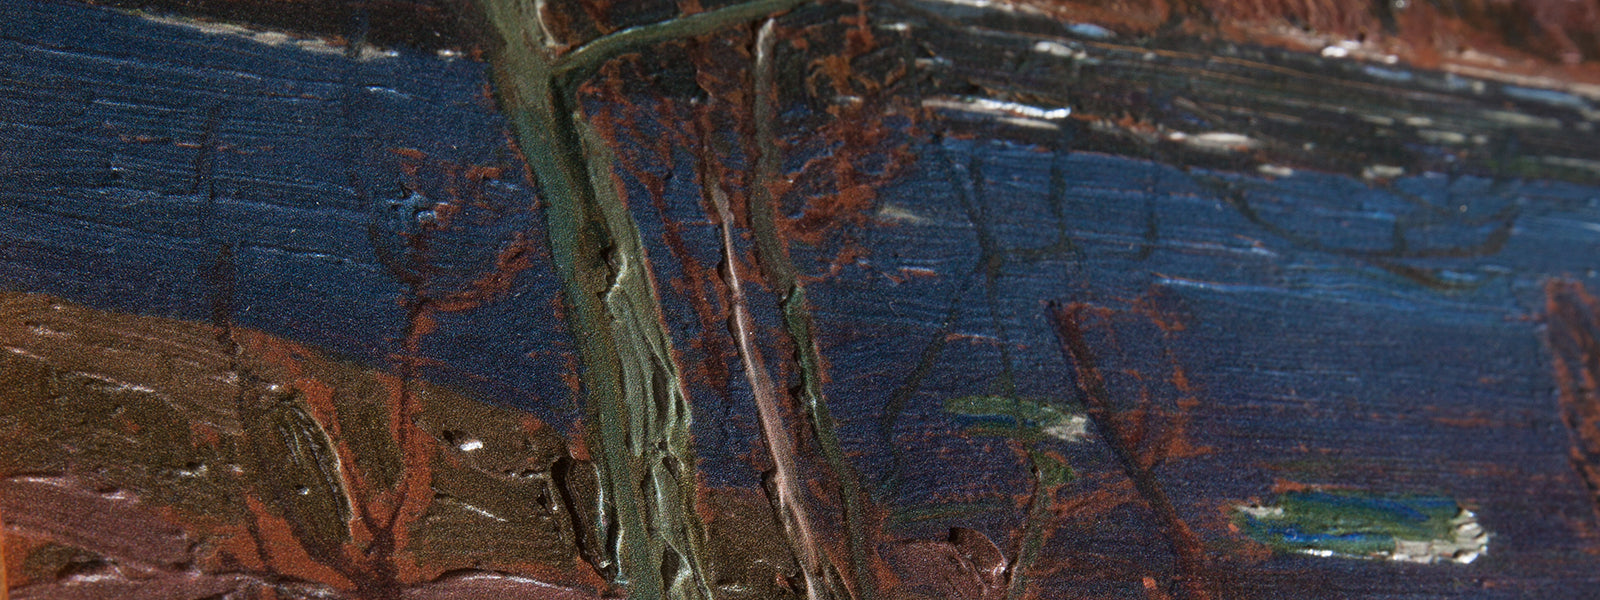 Opening of the Rivers, by Tom Thomson Painting Close Up